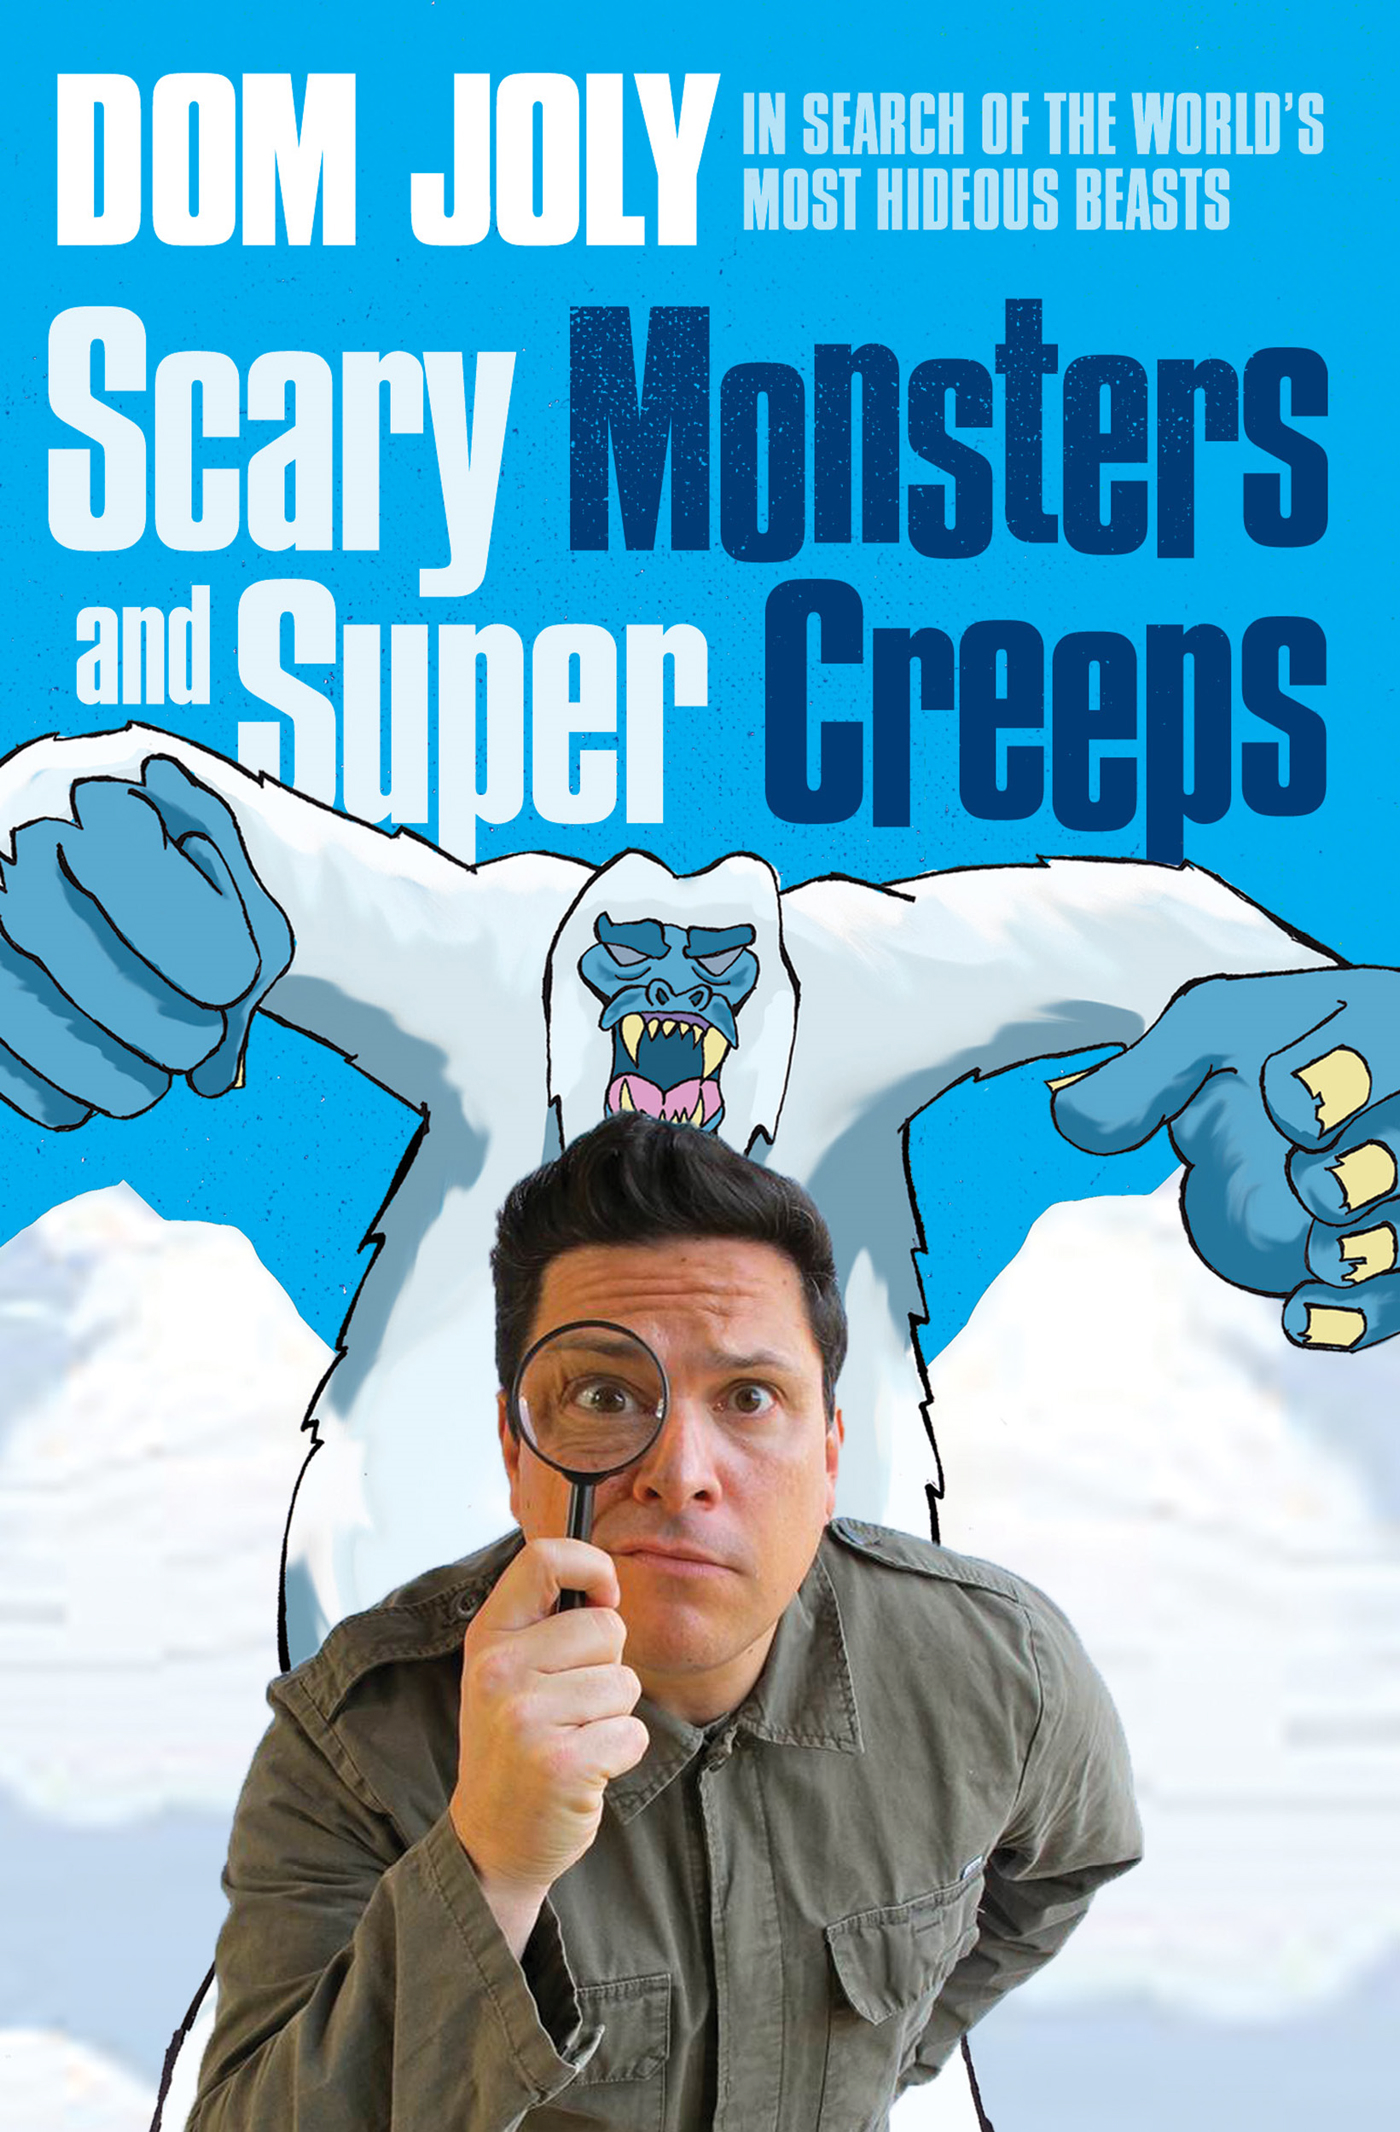 Scary Monsters and Super Creeps In Search of the World's Most Hideous Beasts